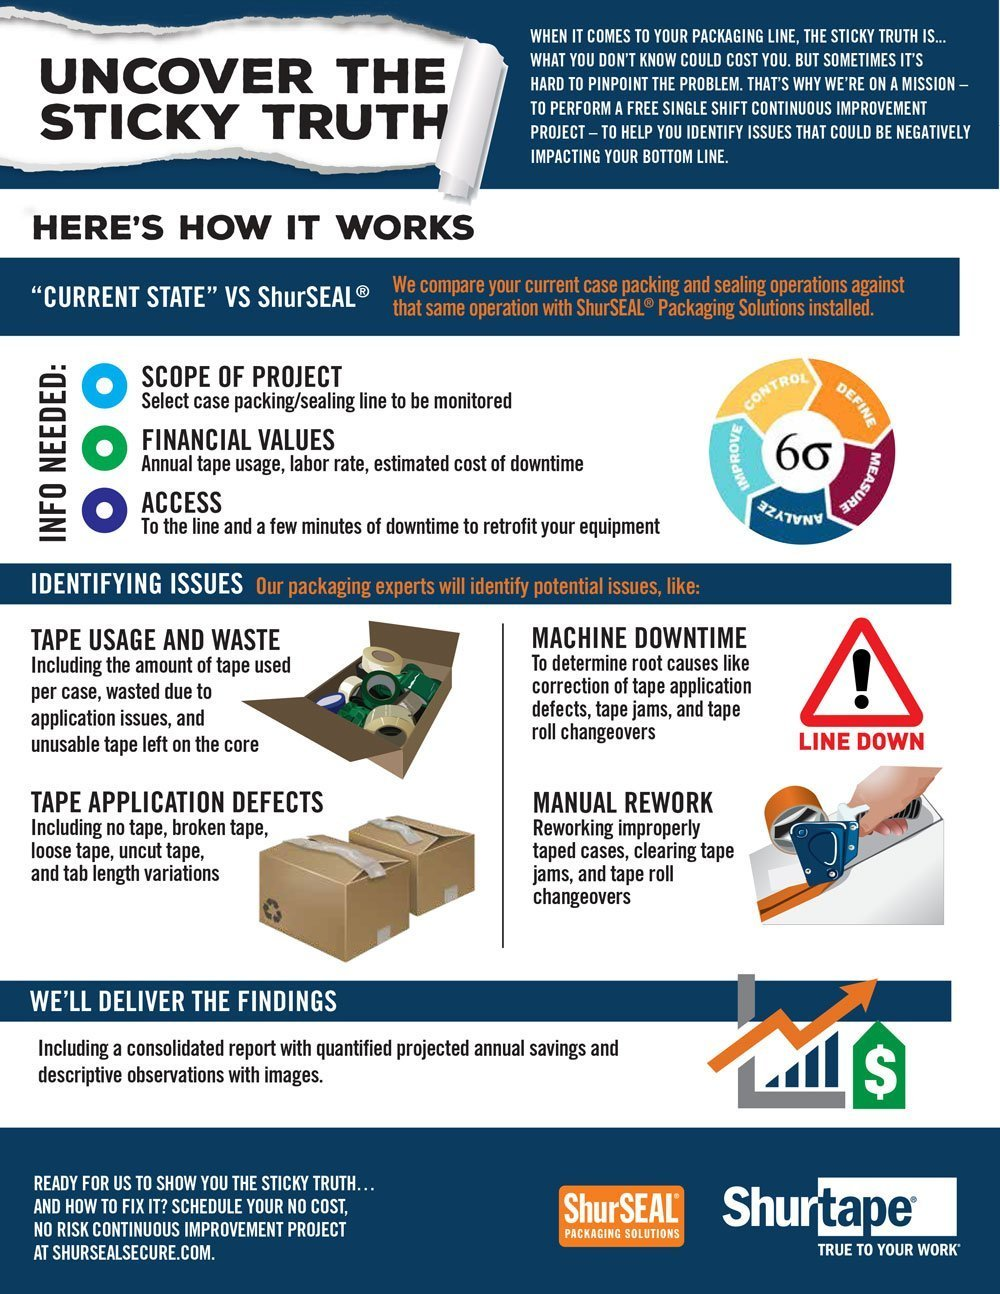 SSCI_Infographic_031819